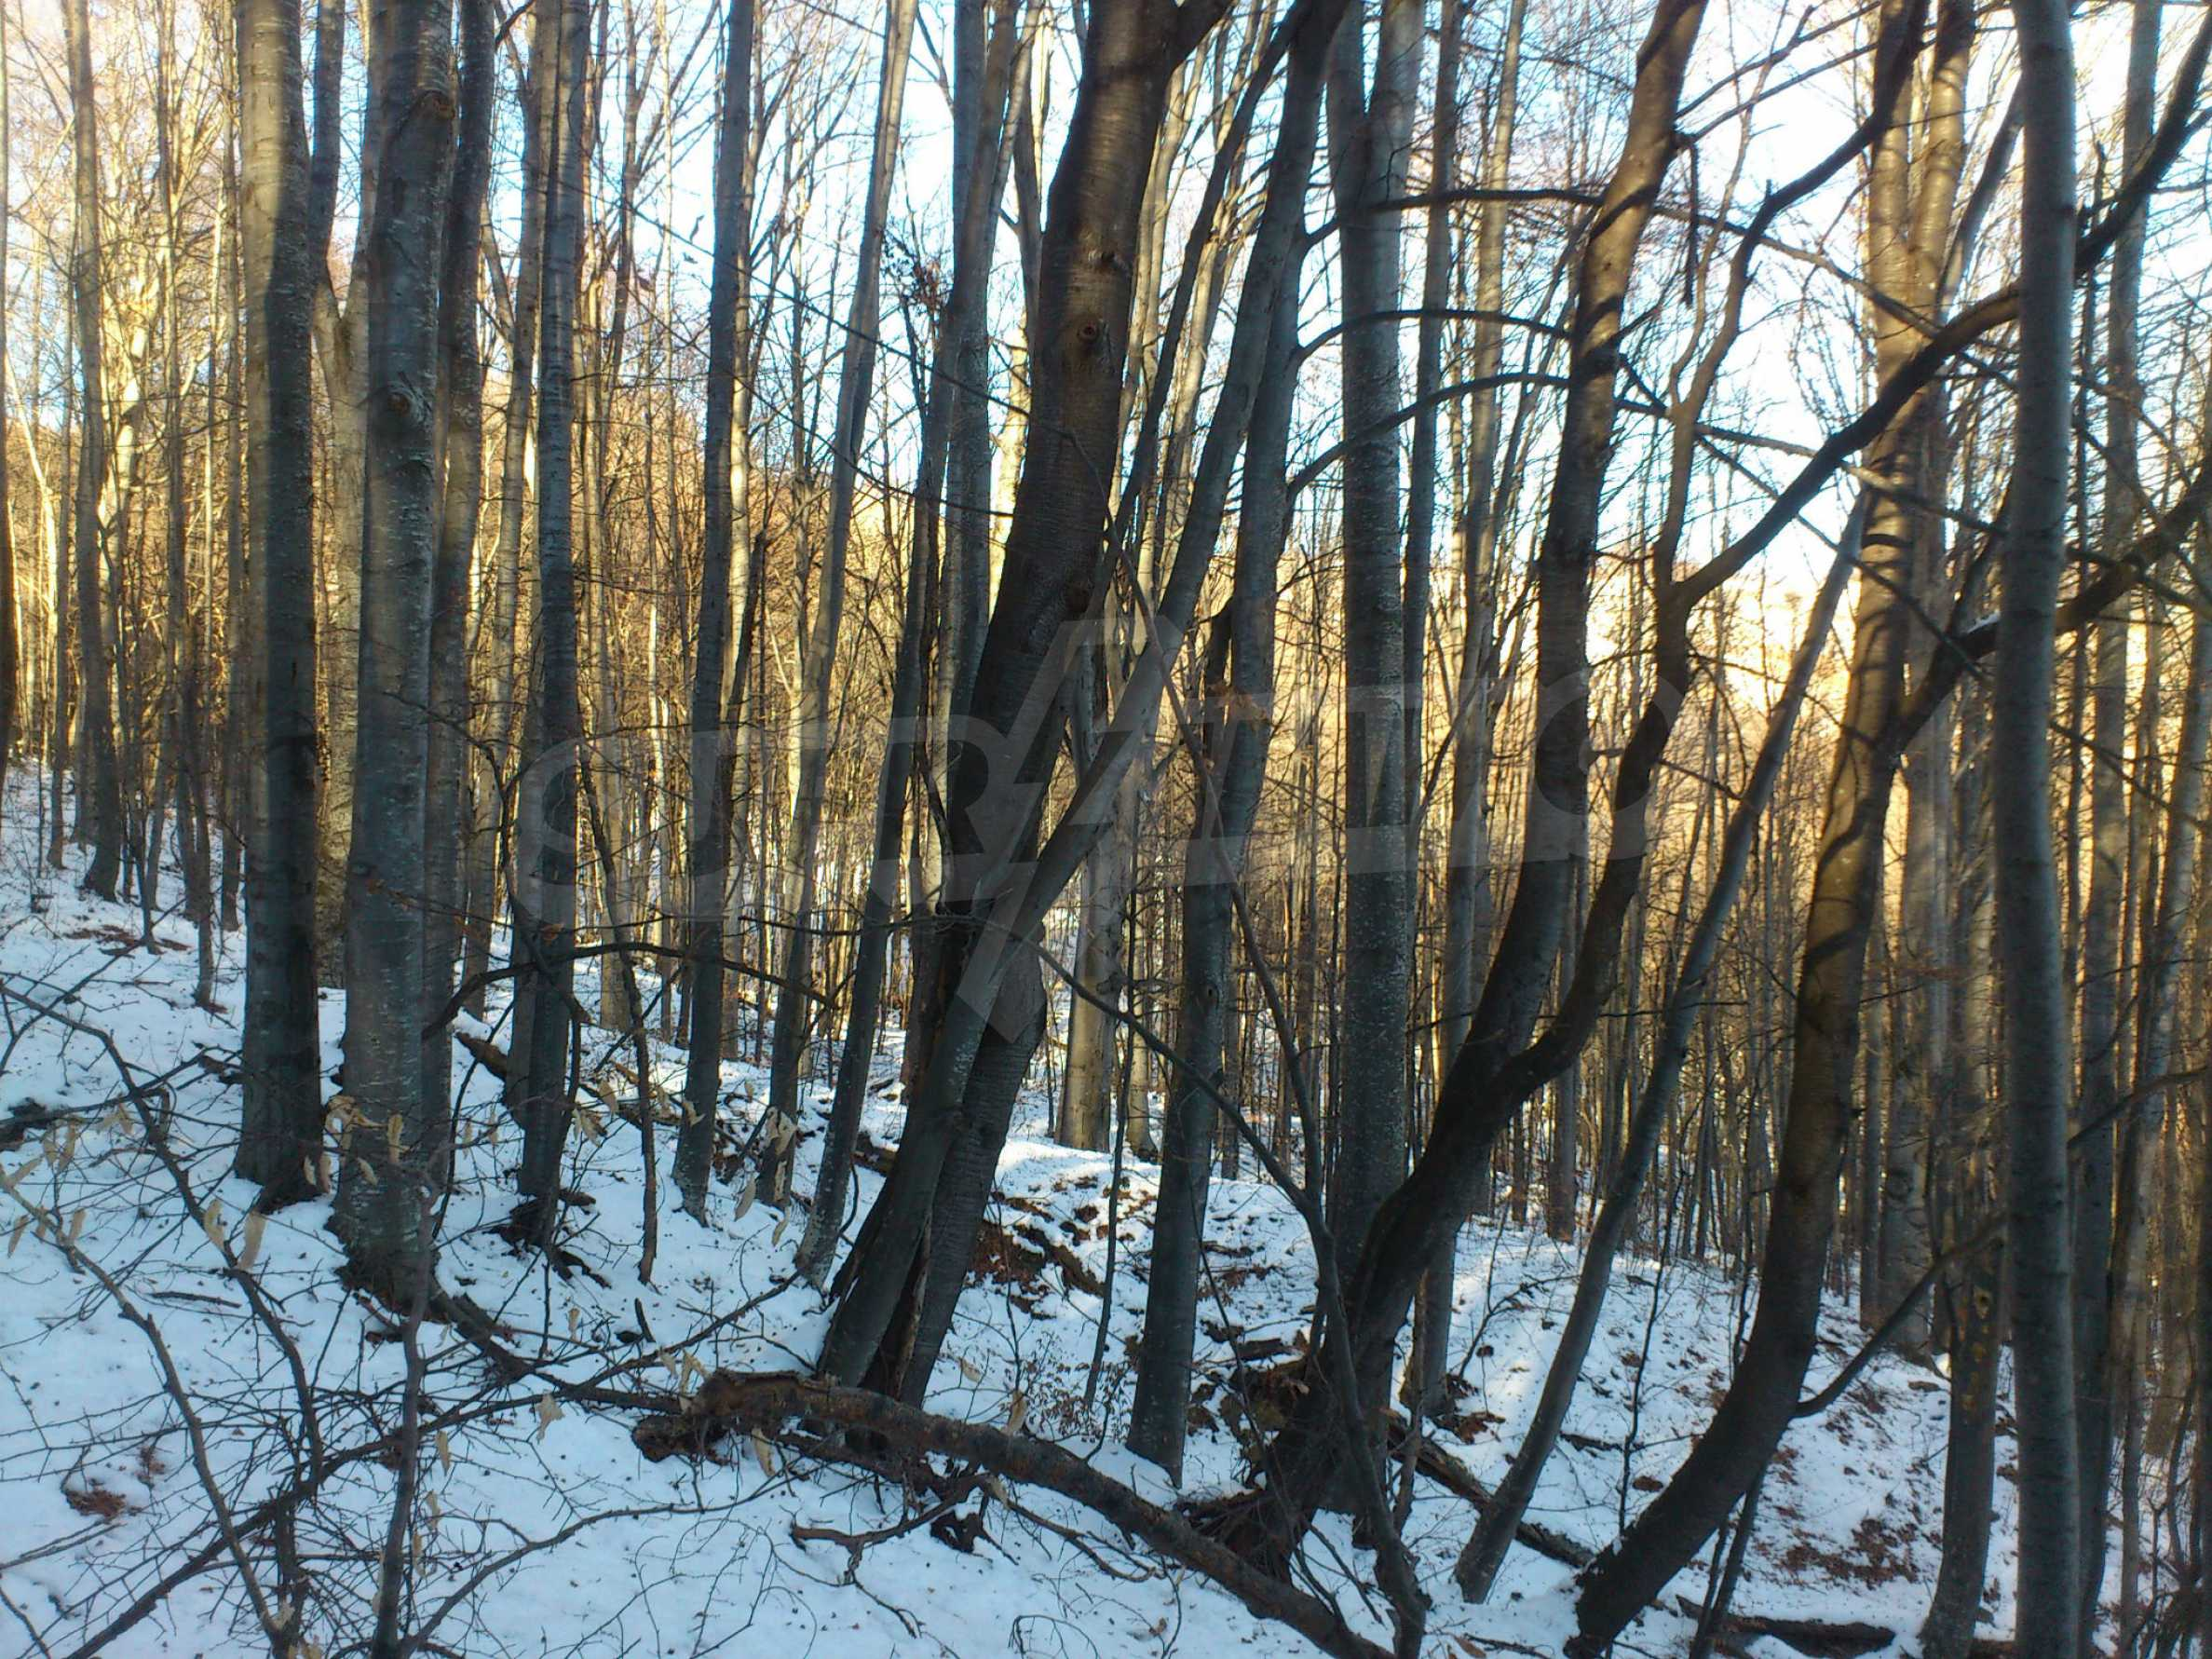 Deciduous forest near Aprilci 15